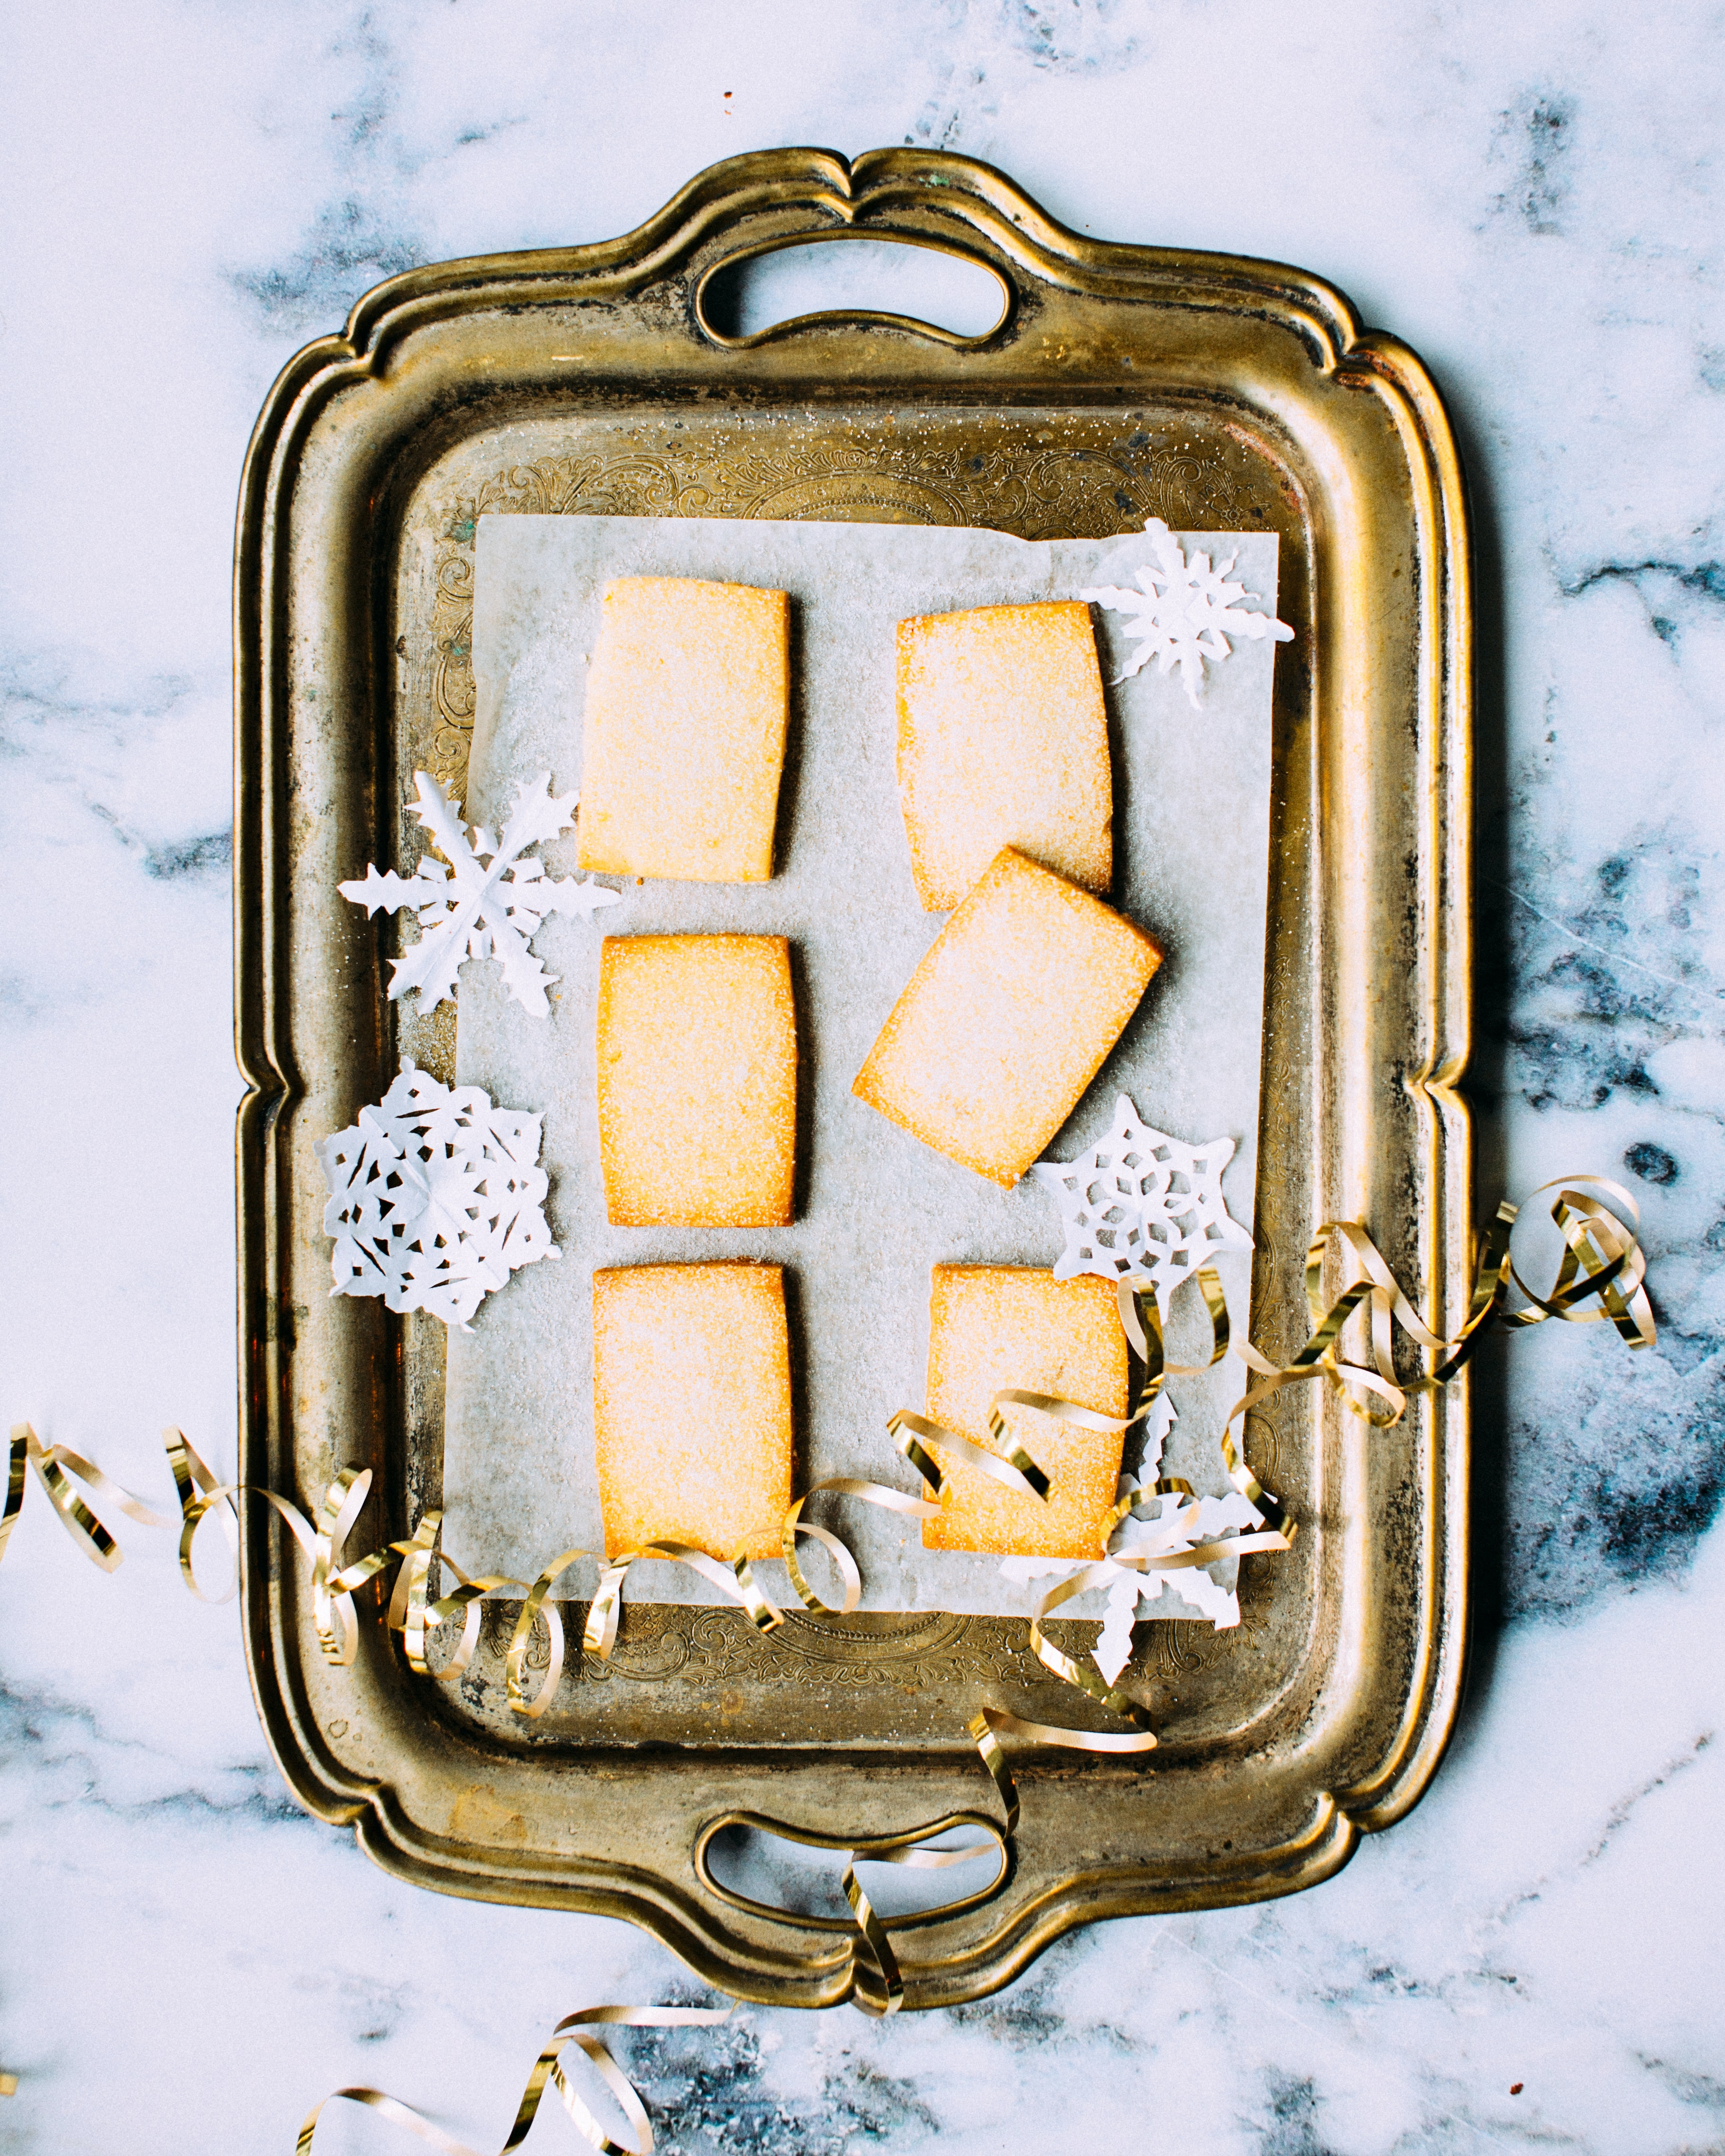 oplatek, wafer, Poland, shared, wishes, tradition, tray, biscuits, shortbread, on tray, marble table, gold tray,